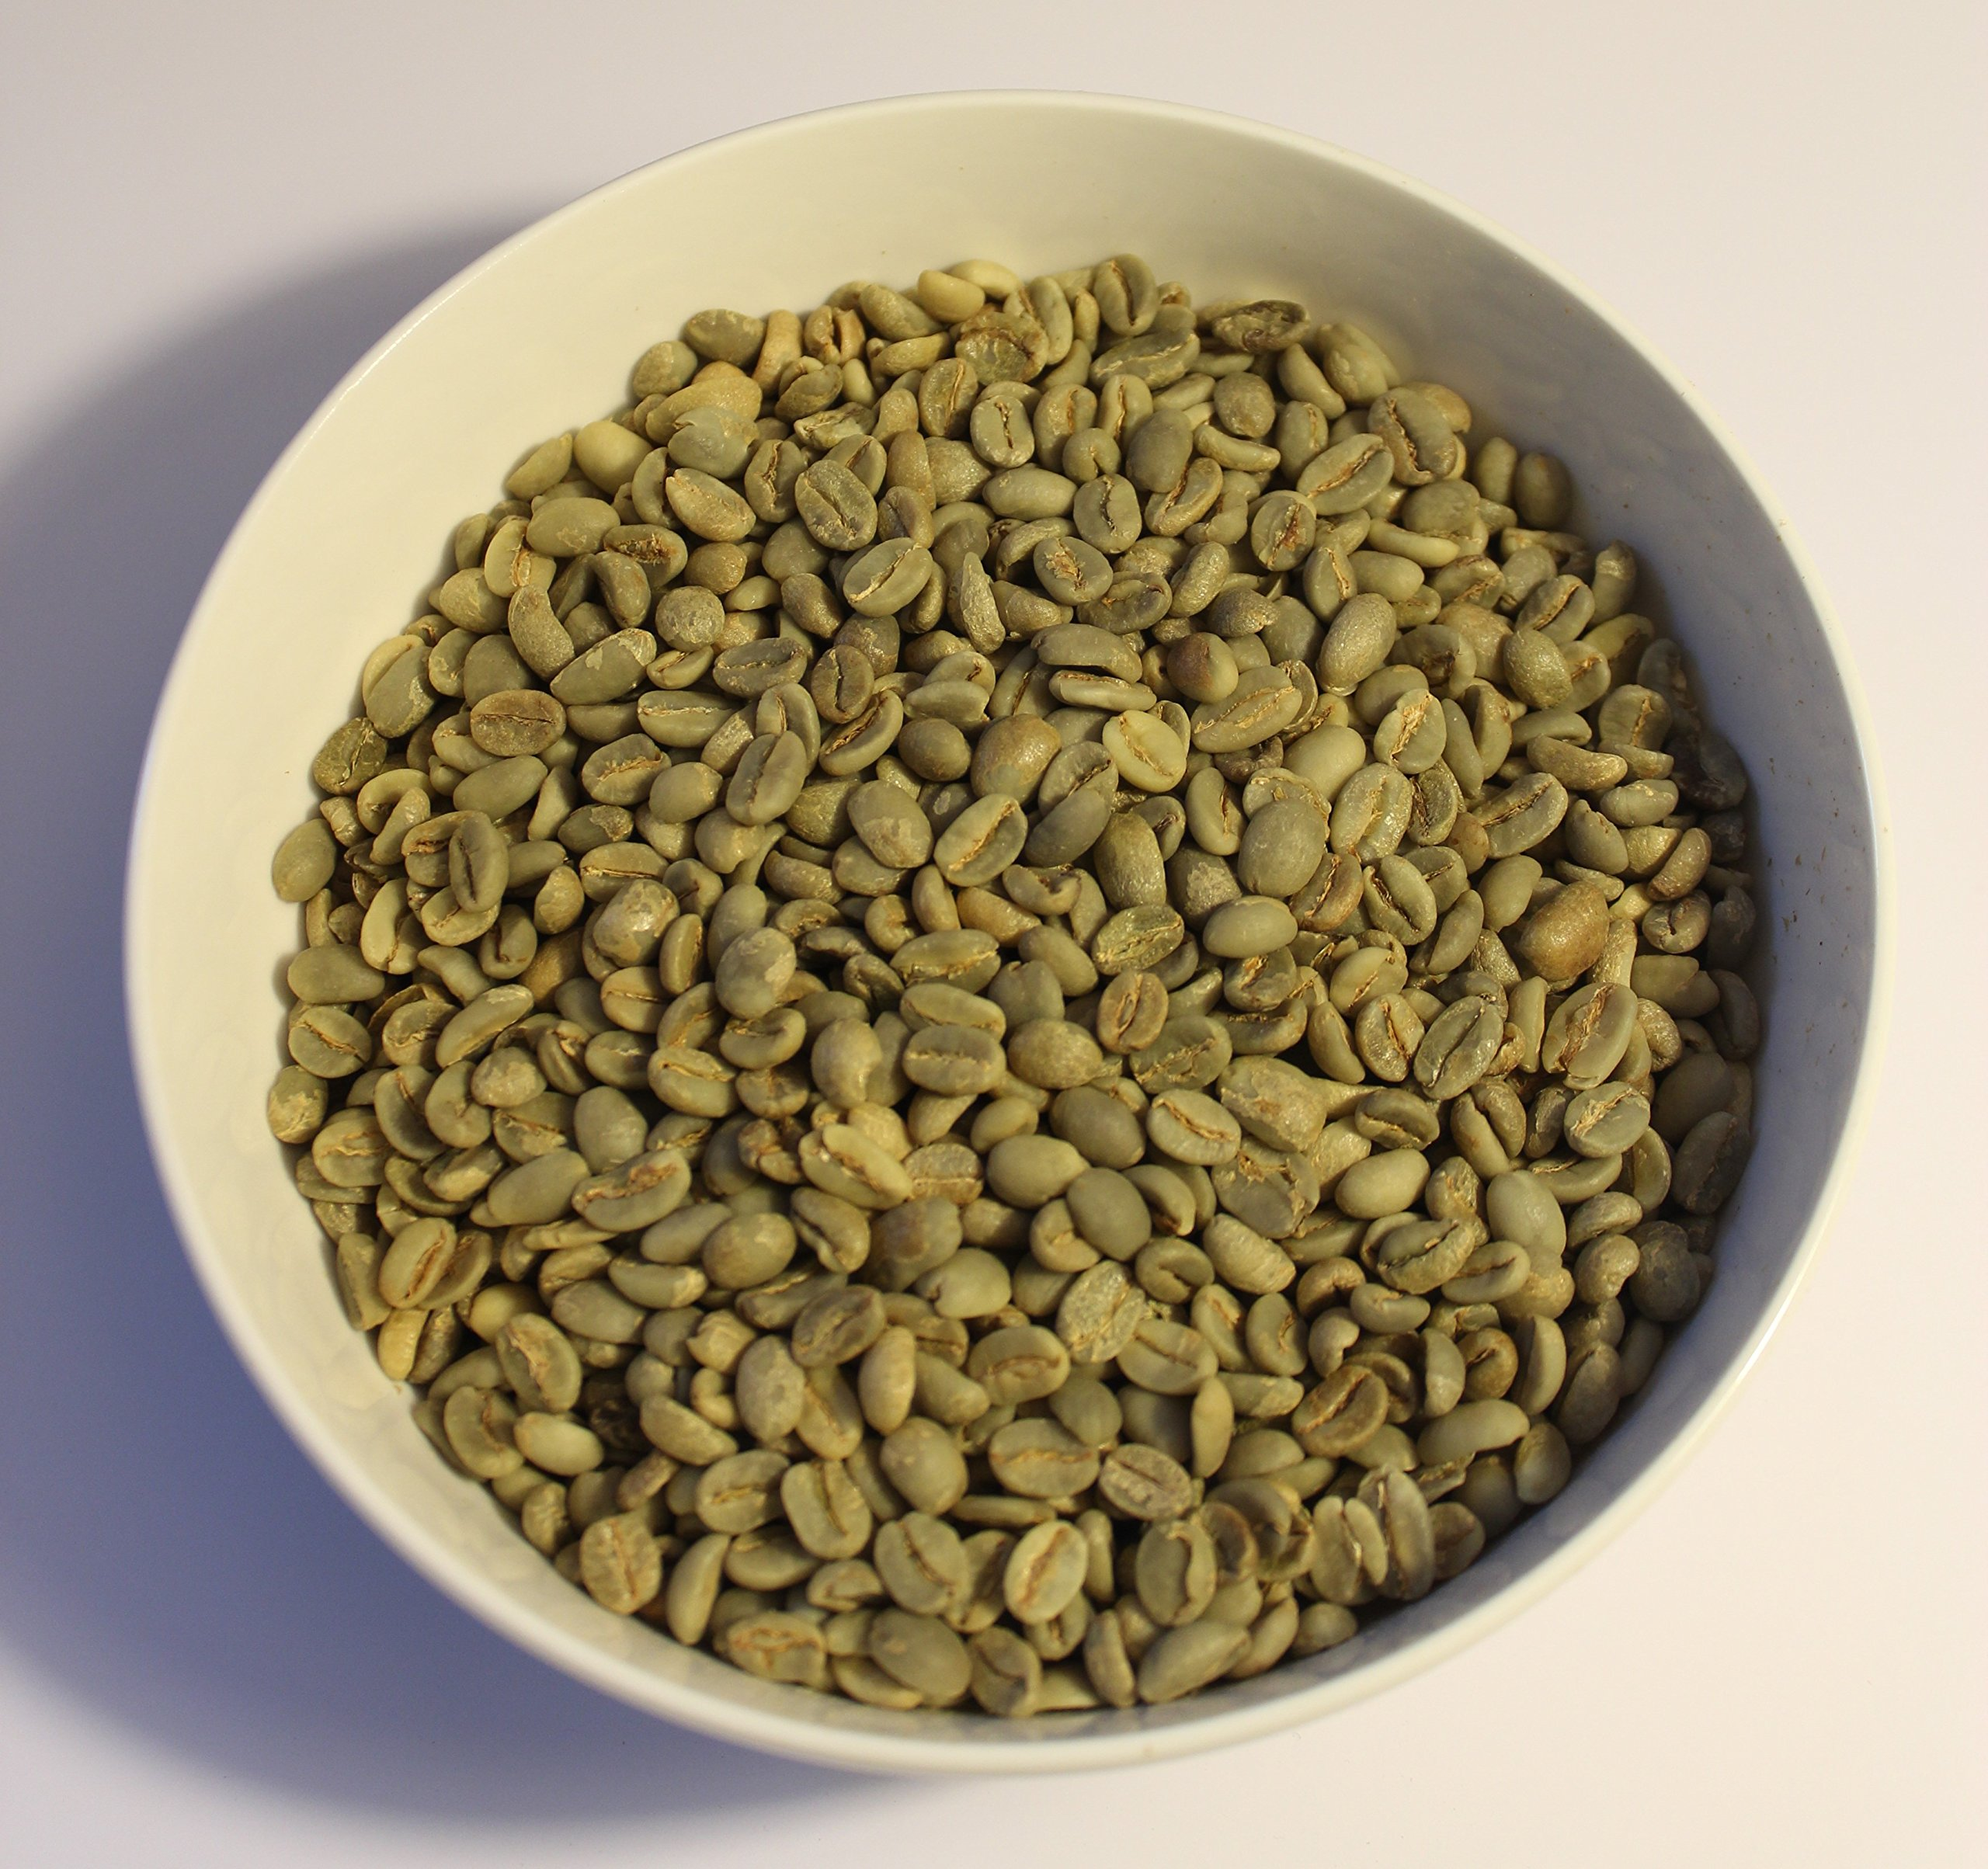 Yemen Mocca Burrai (Bura'a Mountain, Raymah) Green (Raw) Coffee Beans - Fresh Current Crop, May 8, 2018 Arrival - From North Country Roasters, (3 Pounds)